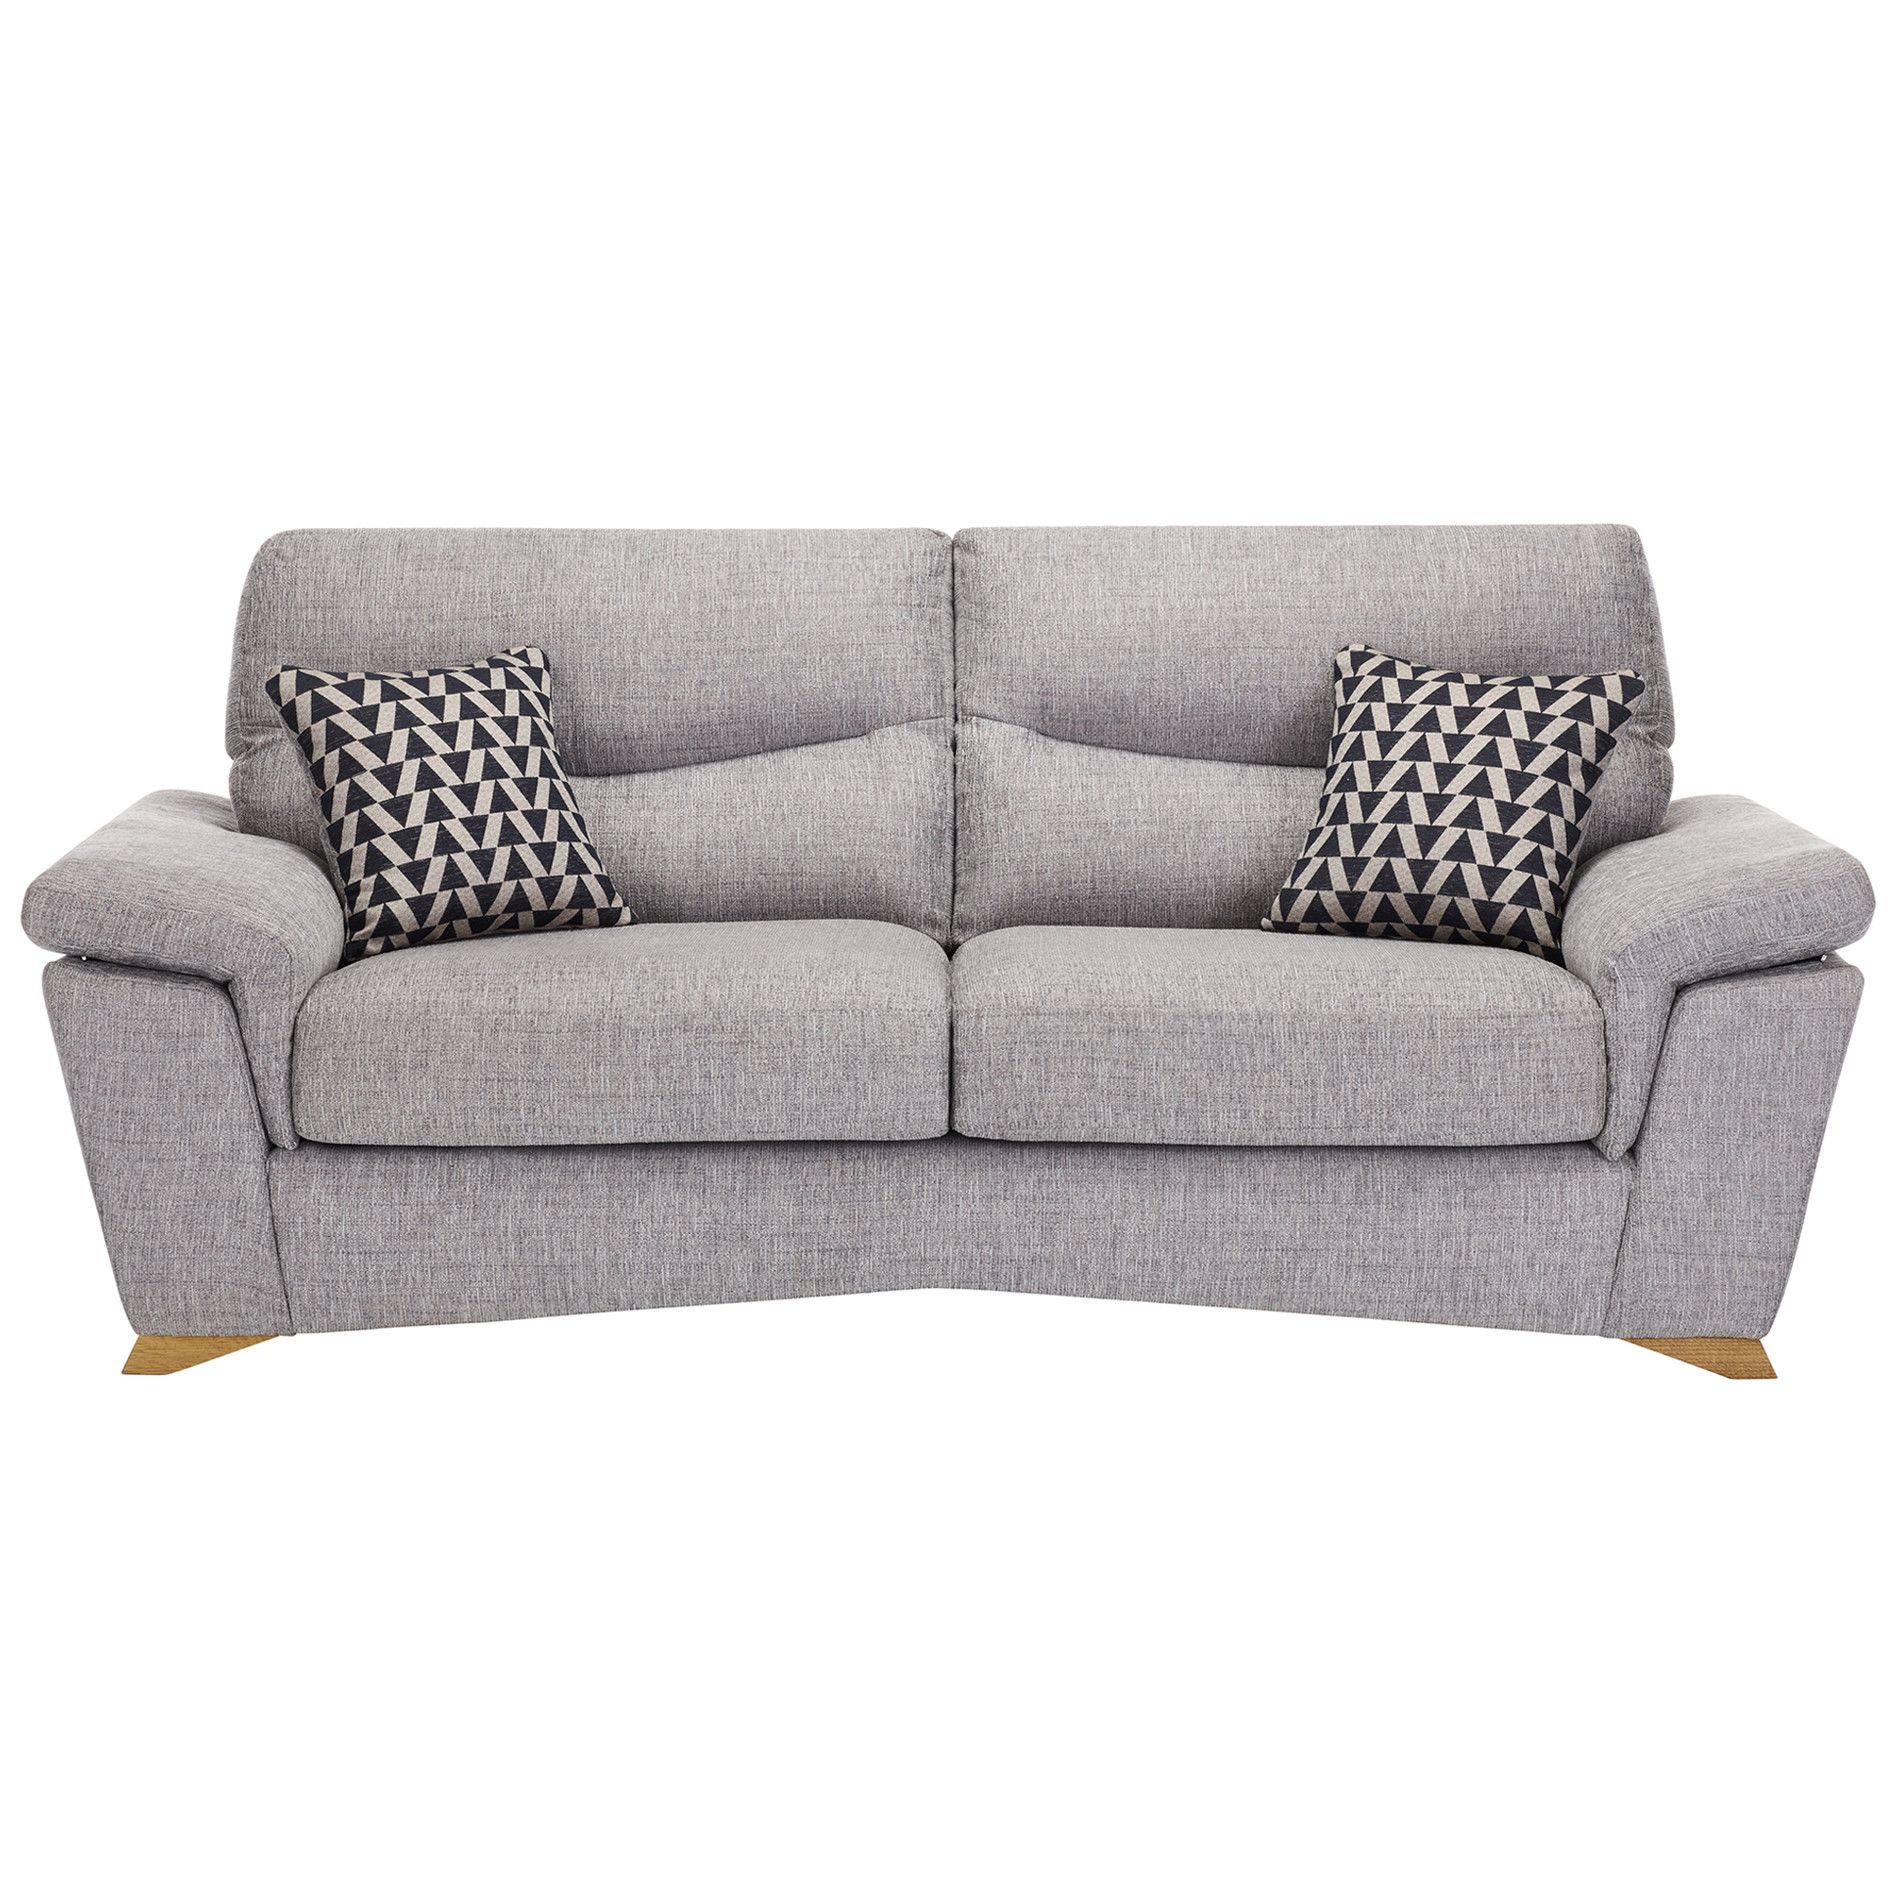 Chiltern 3 Seater Sofa – Next Day Delivery Chiltern 3 Seater Sofa